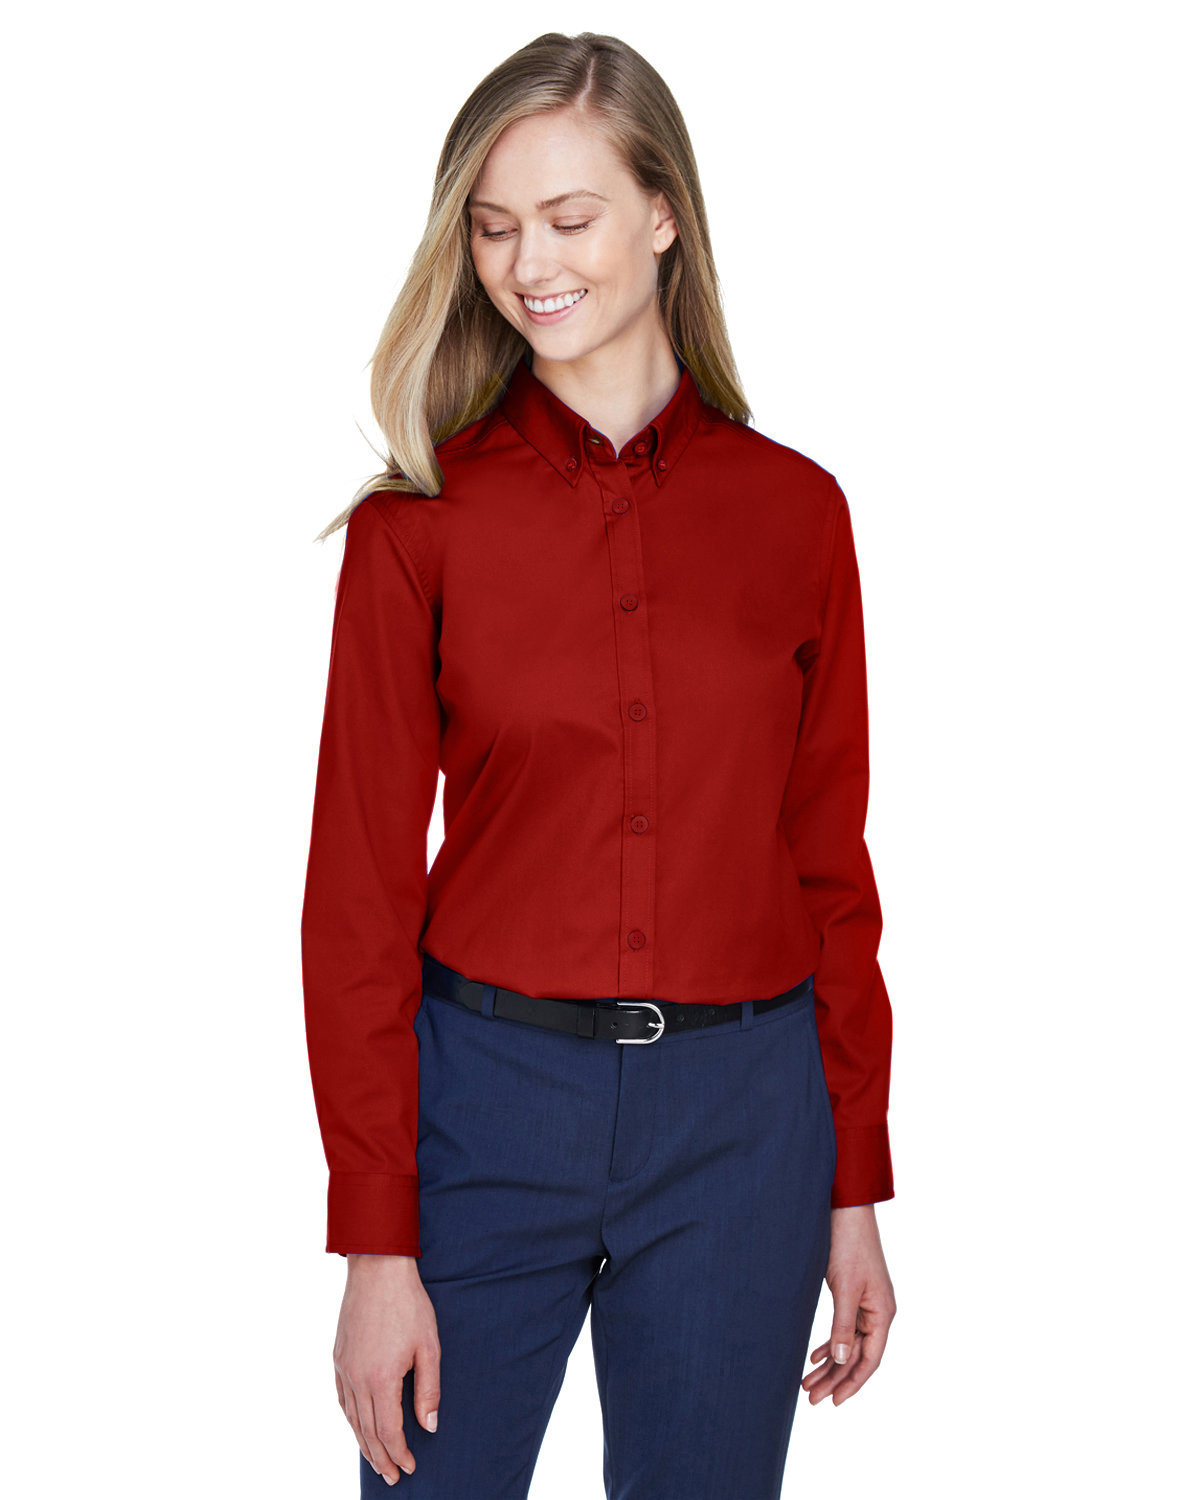 Core 365 Ladies' Operate Long-Sleeve Twill Shirt CLASSIC RED